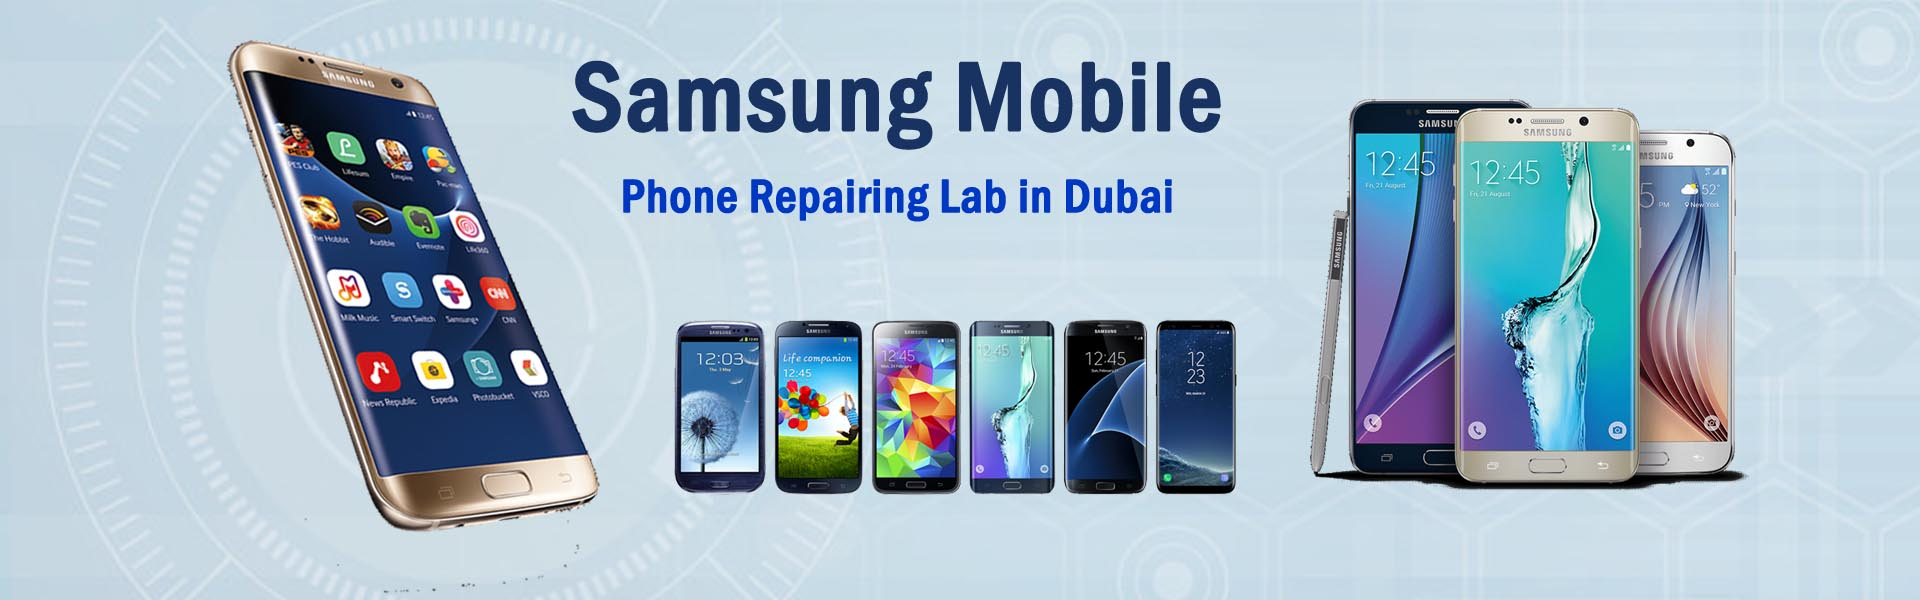 samsung mobile phone repair in dubai